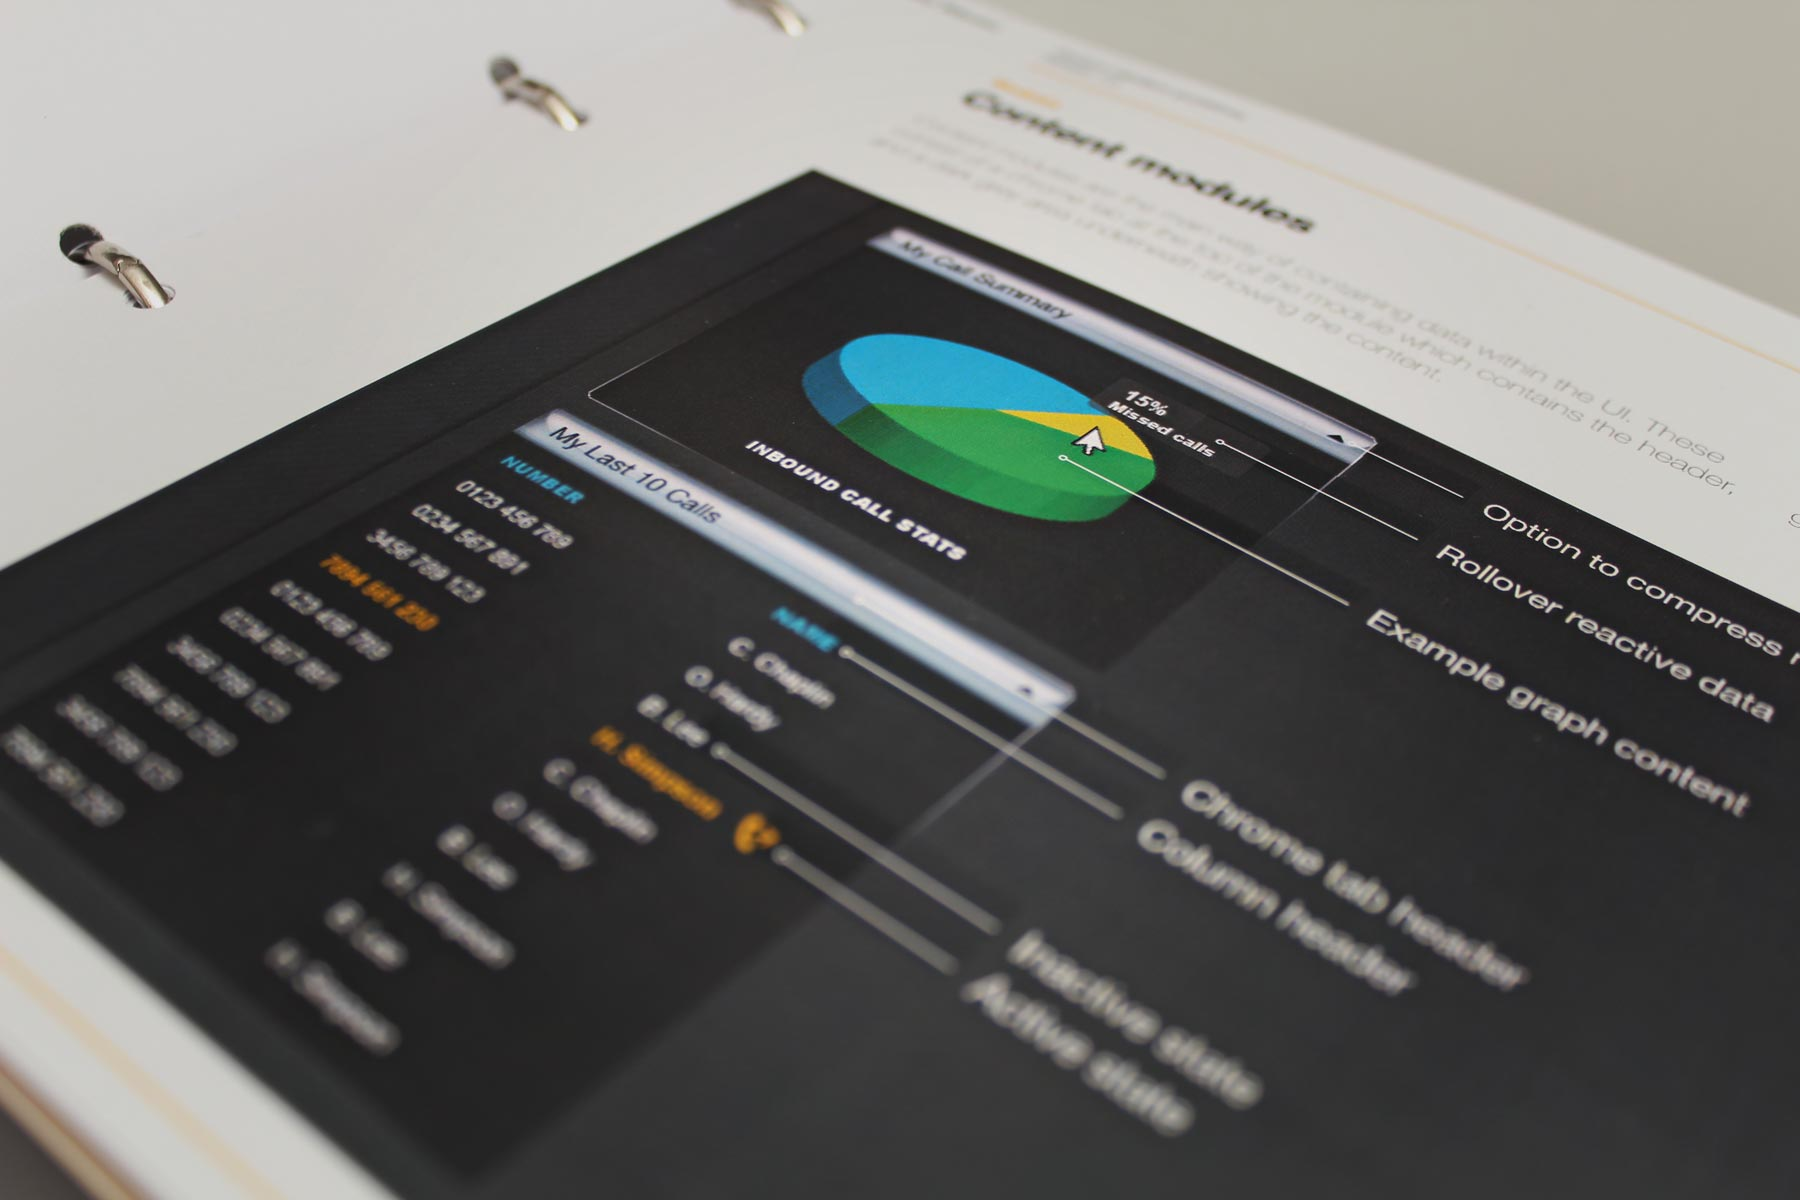 We created guidelines for charts and graphs which are dynamically built on the fly using jquery.